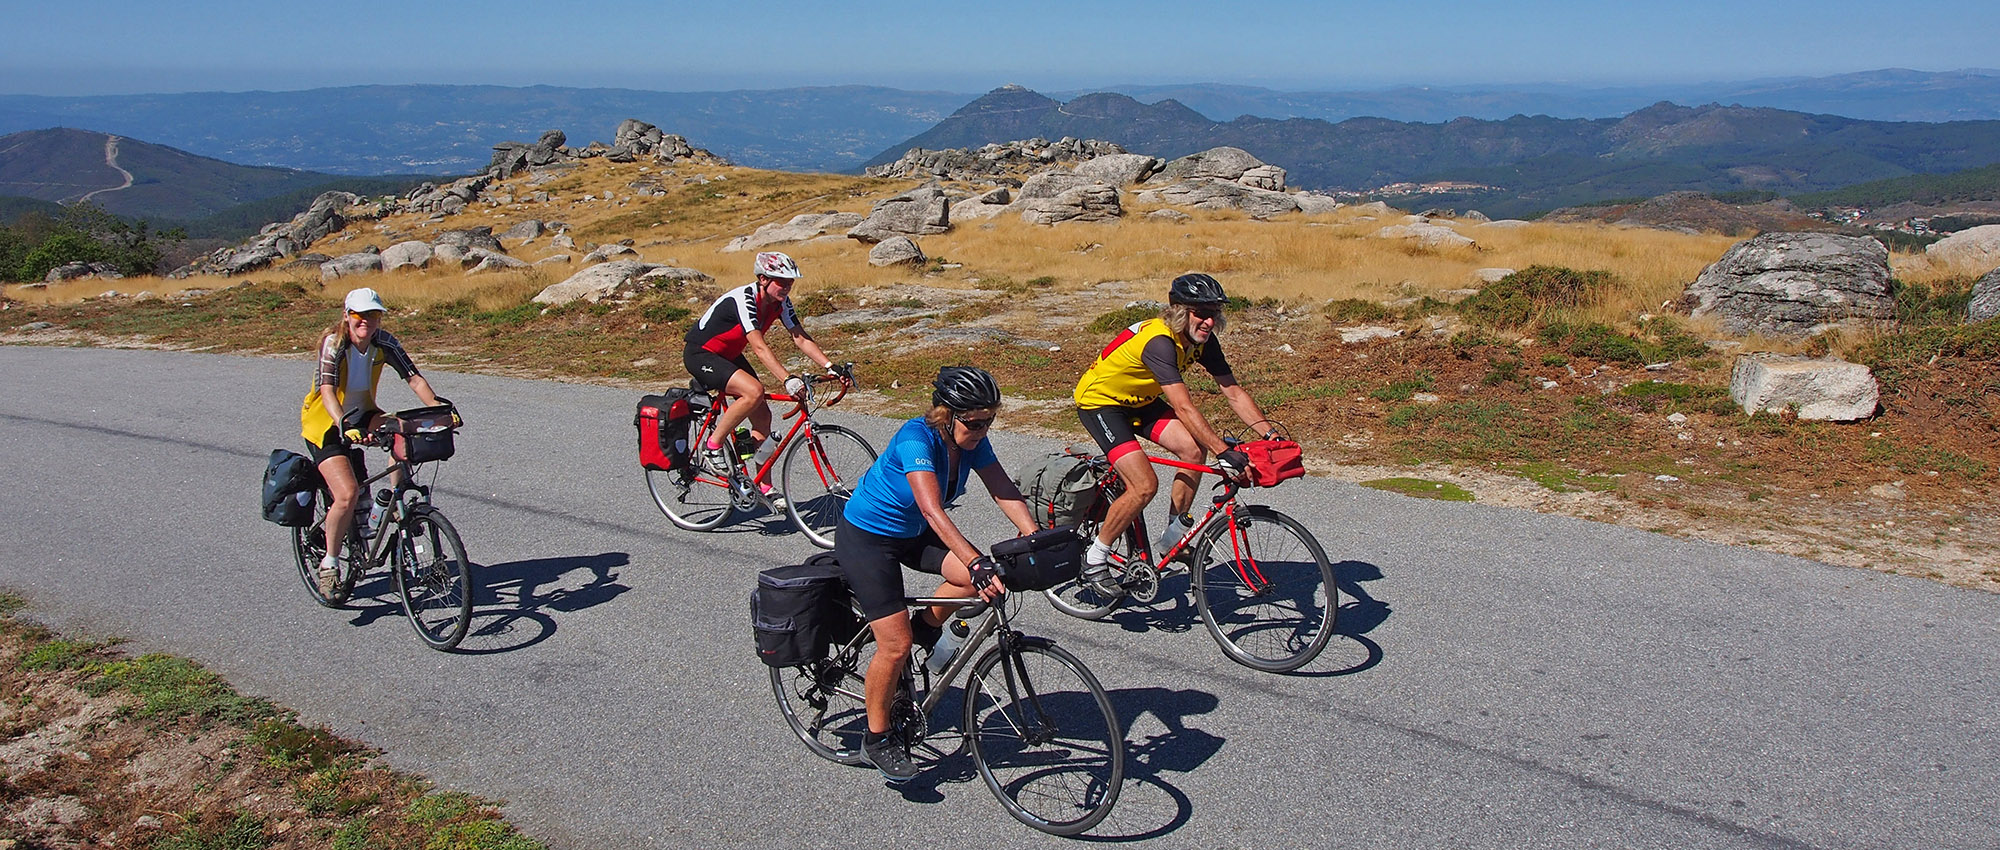 Cycling the granite mountains of Portugal